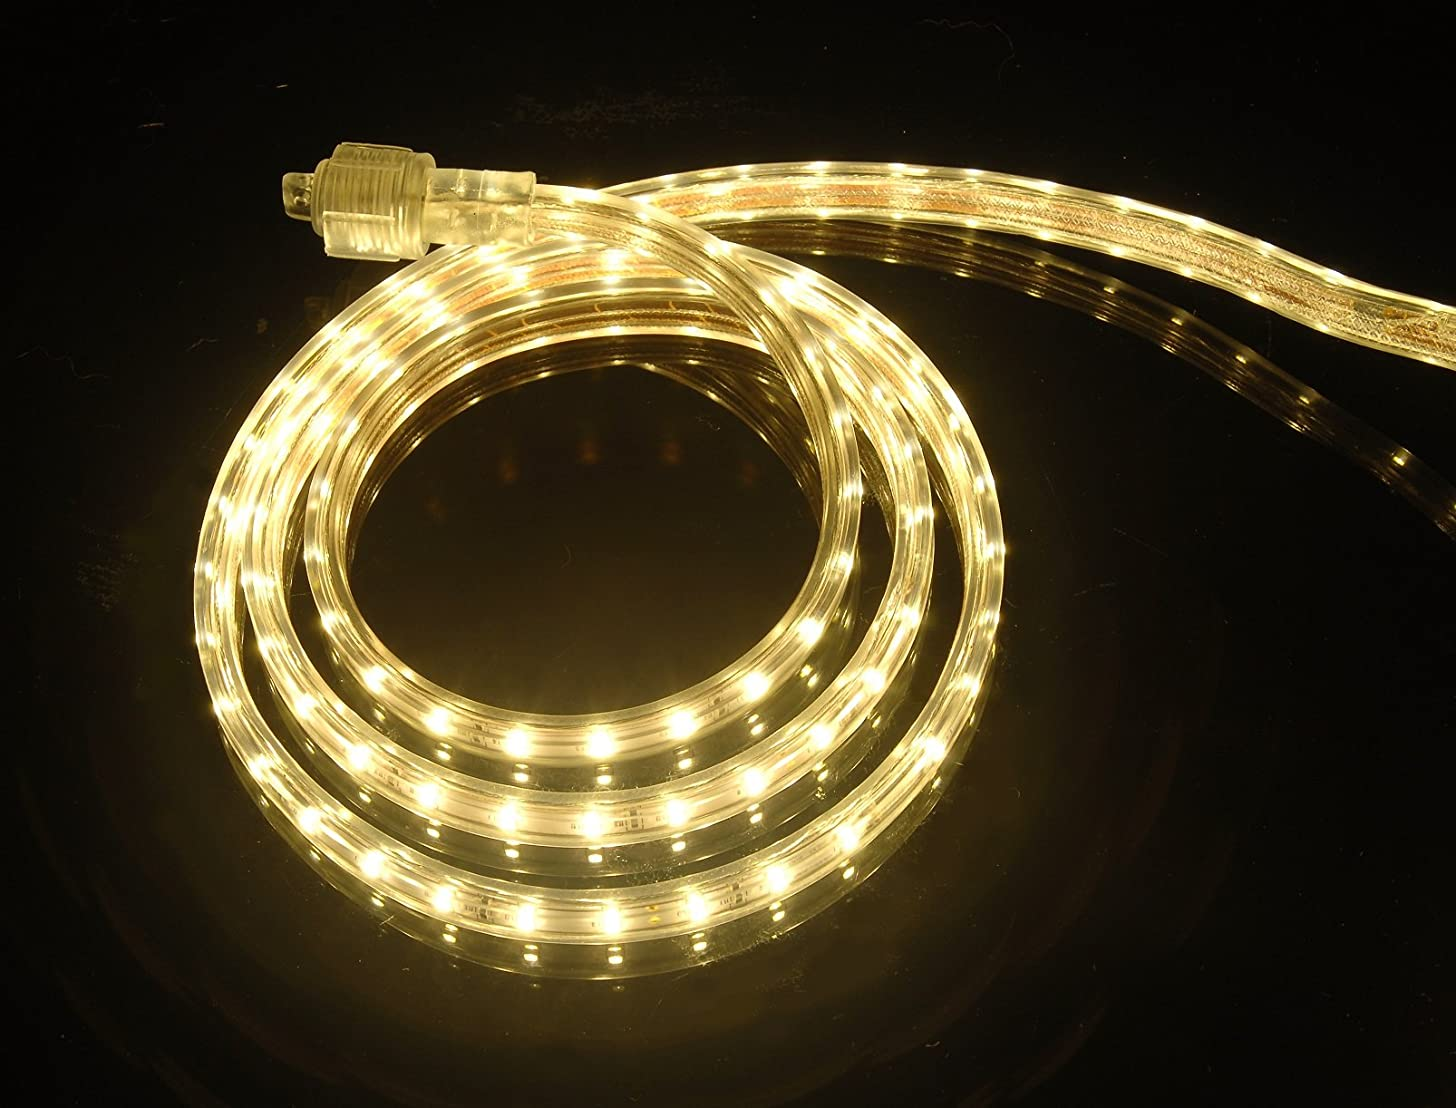 CBConcept UL Listed, 30 Feet, 3200 Lumen, 3000K Warm White, Dimmable, 110-120V AC Flexible Flat LED Strip Rope Light, 540 Units 3528 SMD LEDs, Indoor/Outdoor Use, Accessories Included, [Ready to use]